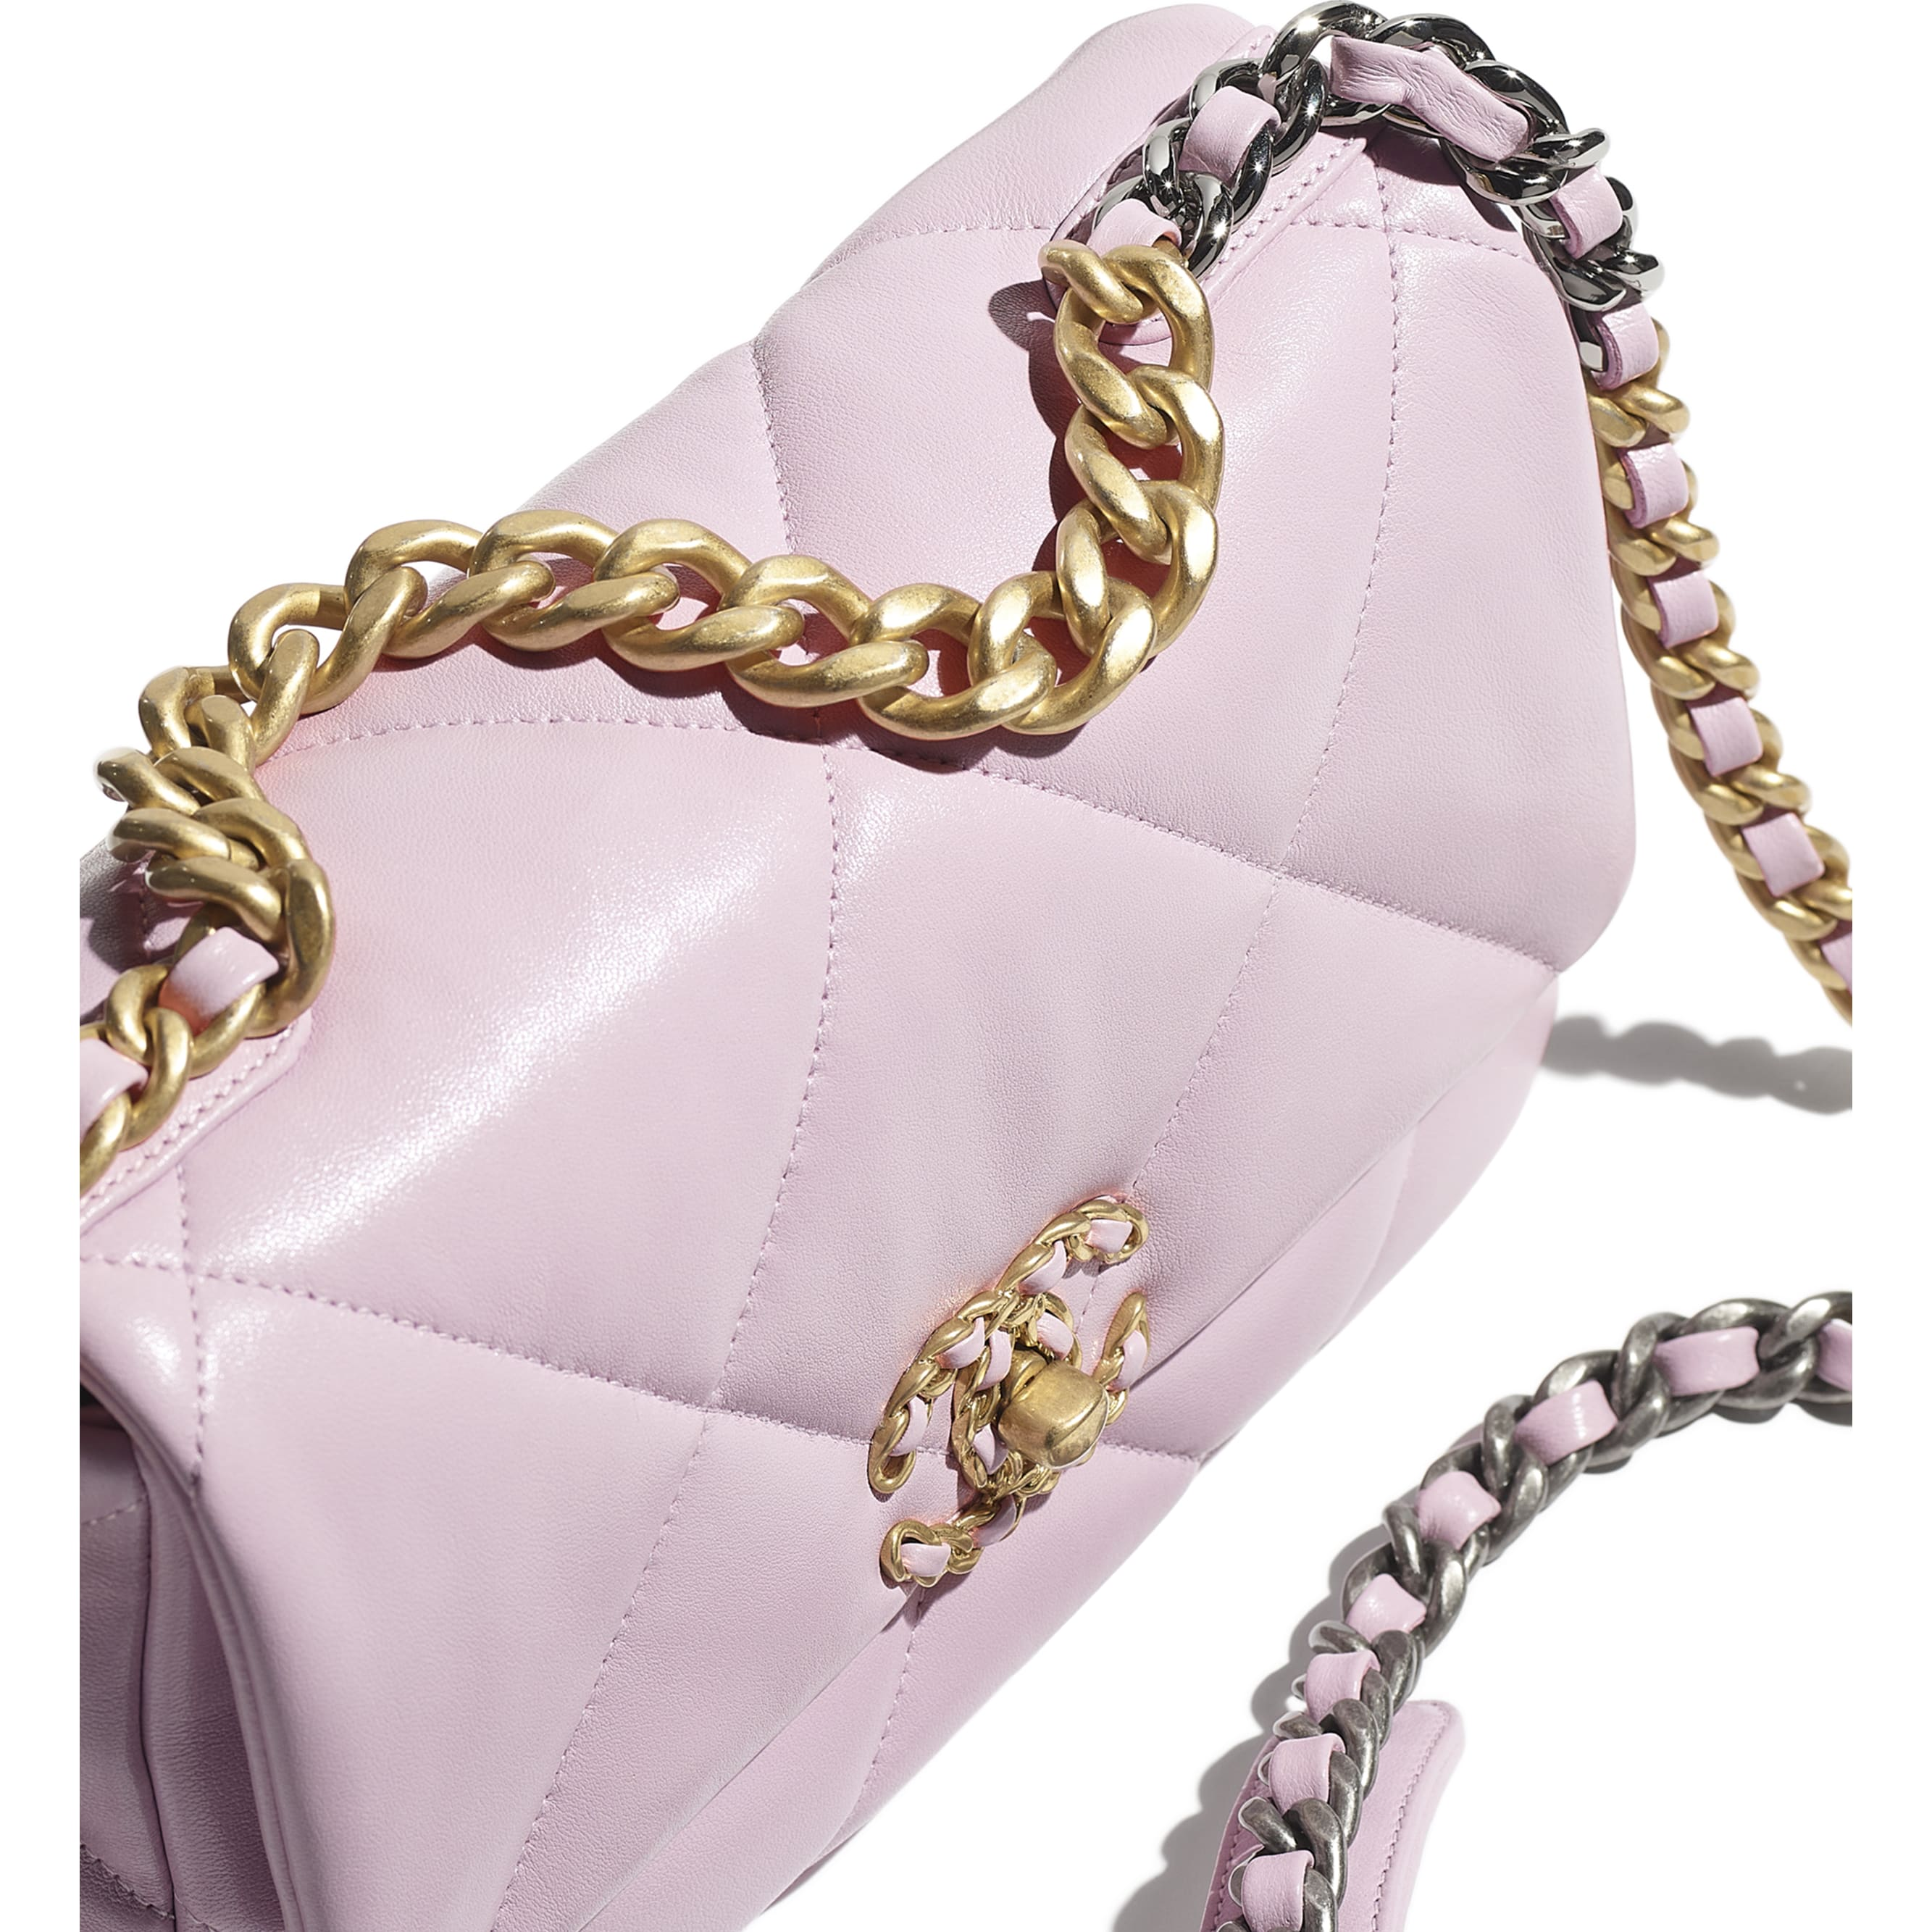 CHANEL 19 Flap Bag - Light Pink - Lambskin, Gold-Tone, Silver-Tone & Ruthenium-Finish Metal - CHANEL - Extra view - see standard sized version